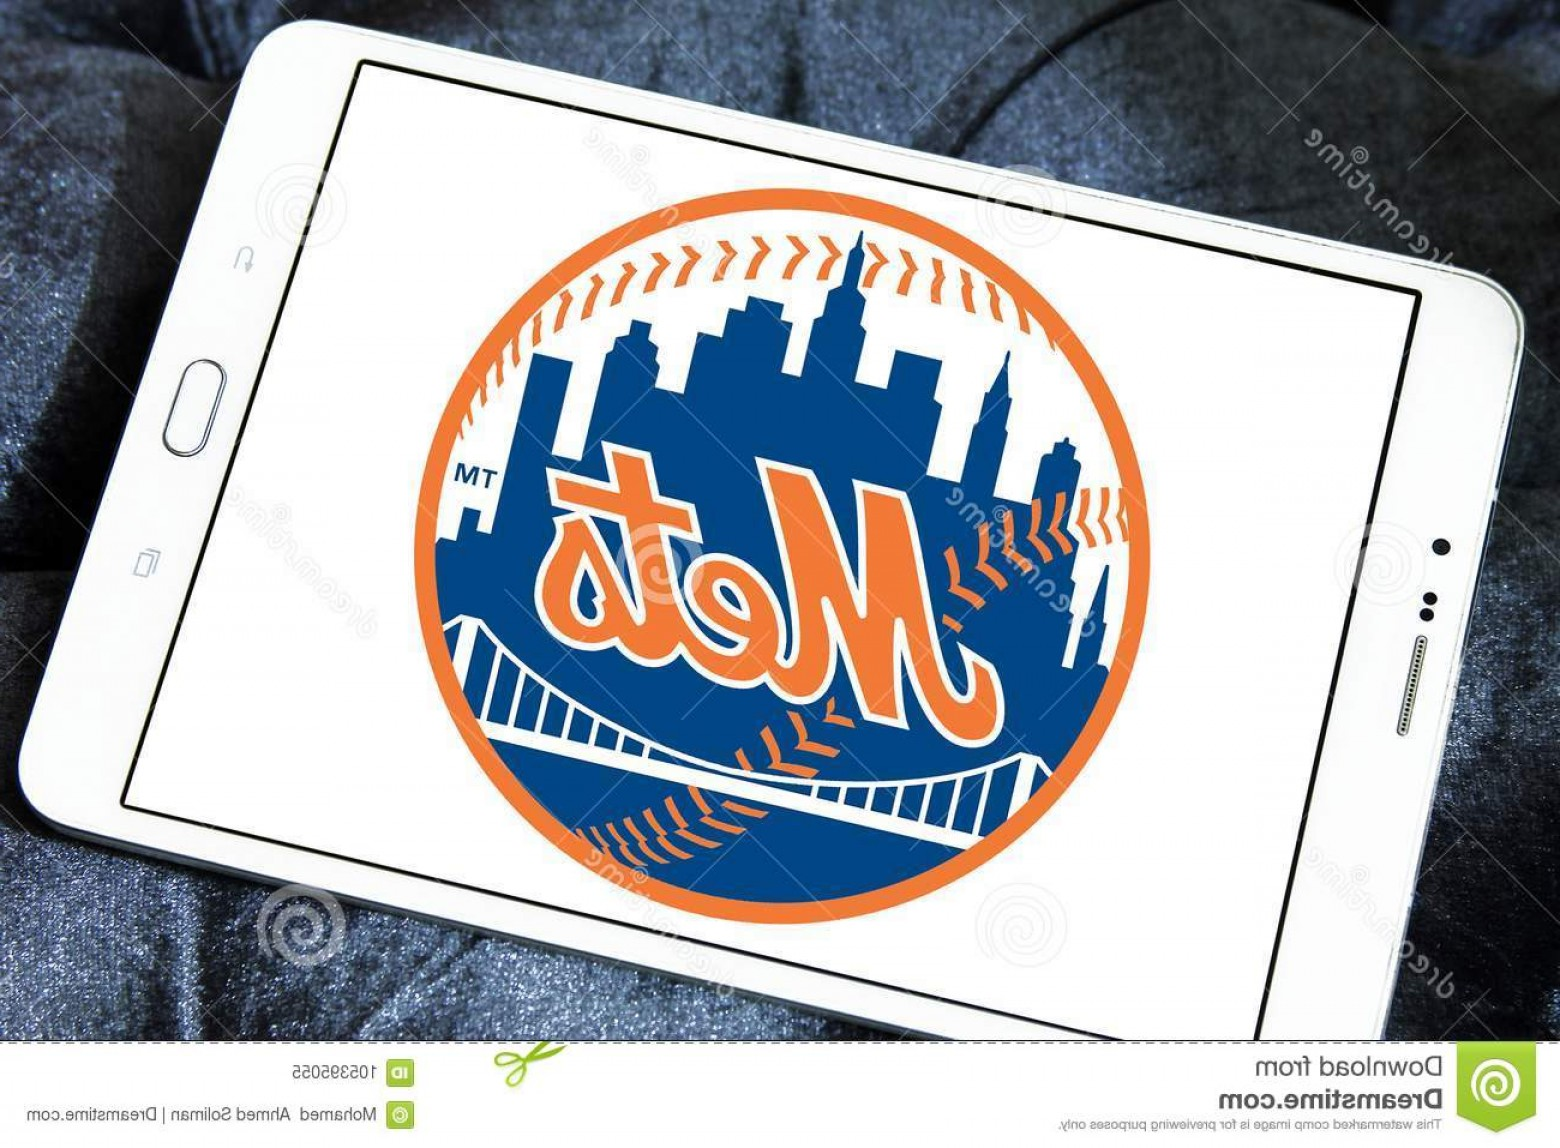 Mets Logo Vector: Logo New York Mets Baseball Team Samsung Tablet New York Mets American Professional Baseball Team Mlb Based Image